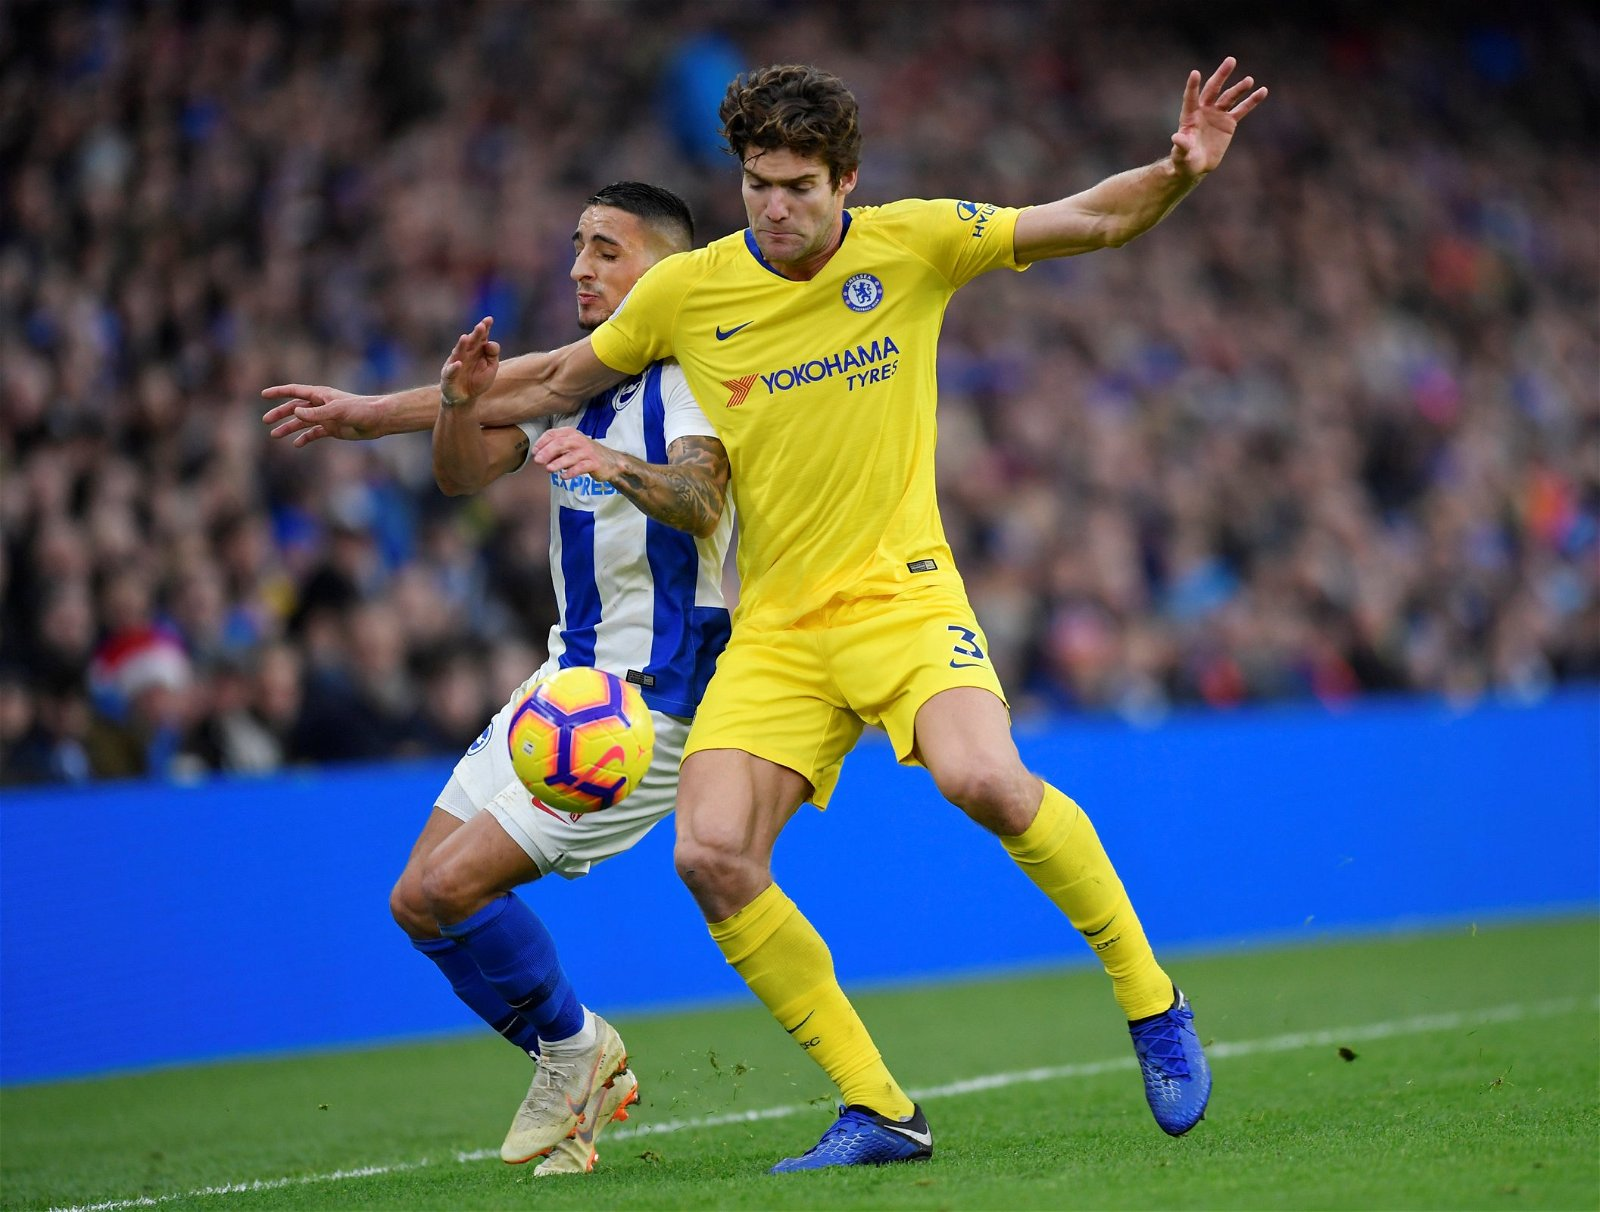 Marcos Alonso in action for Chelsea - Opinion: Sarri needs to fully trust rotation option who will help Hazard & Higuain thrive